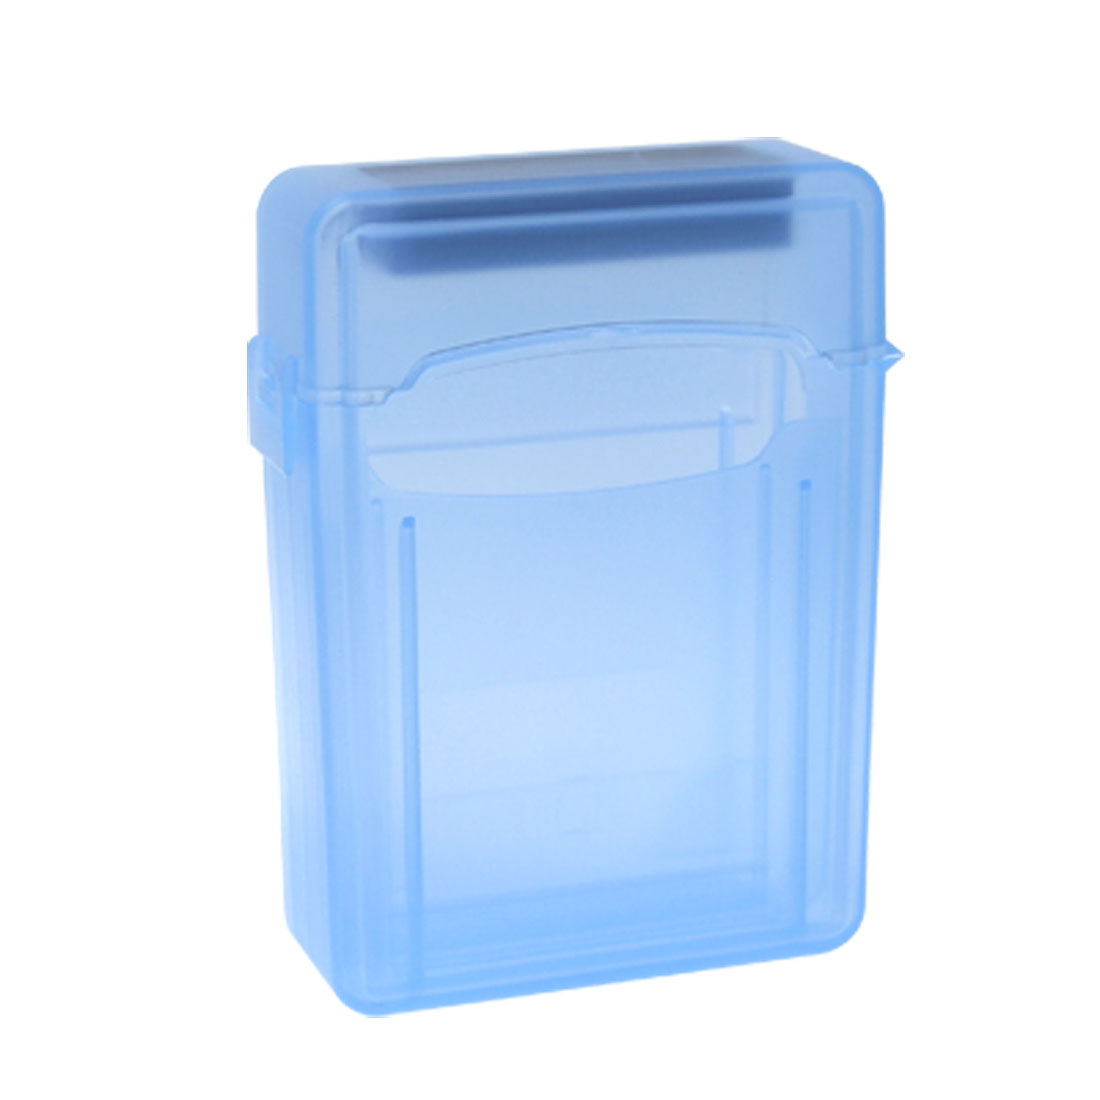 2.5 Inch IDE Hard Drive Enclosure External Case Storage Box Blue